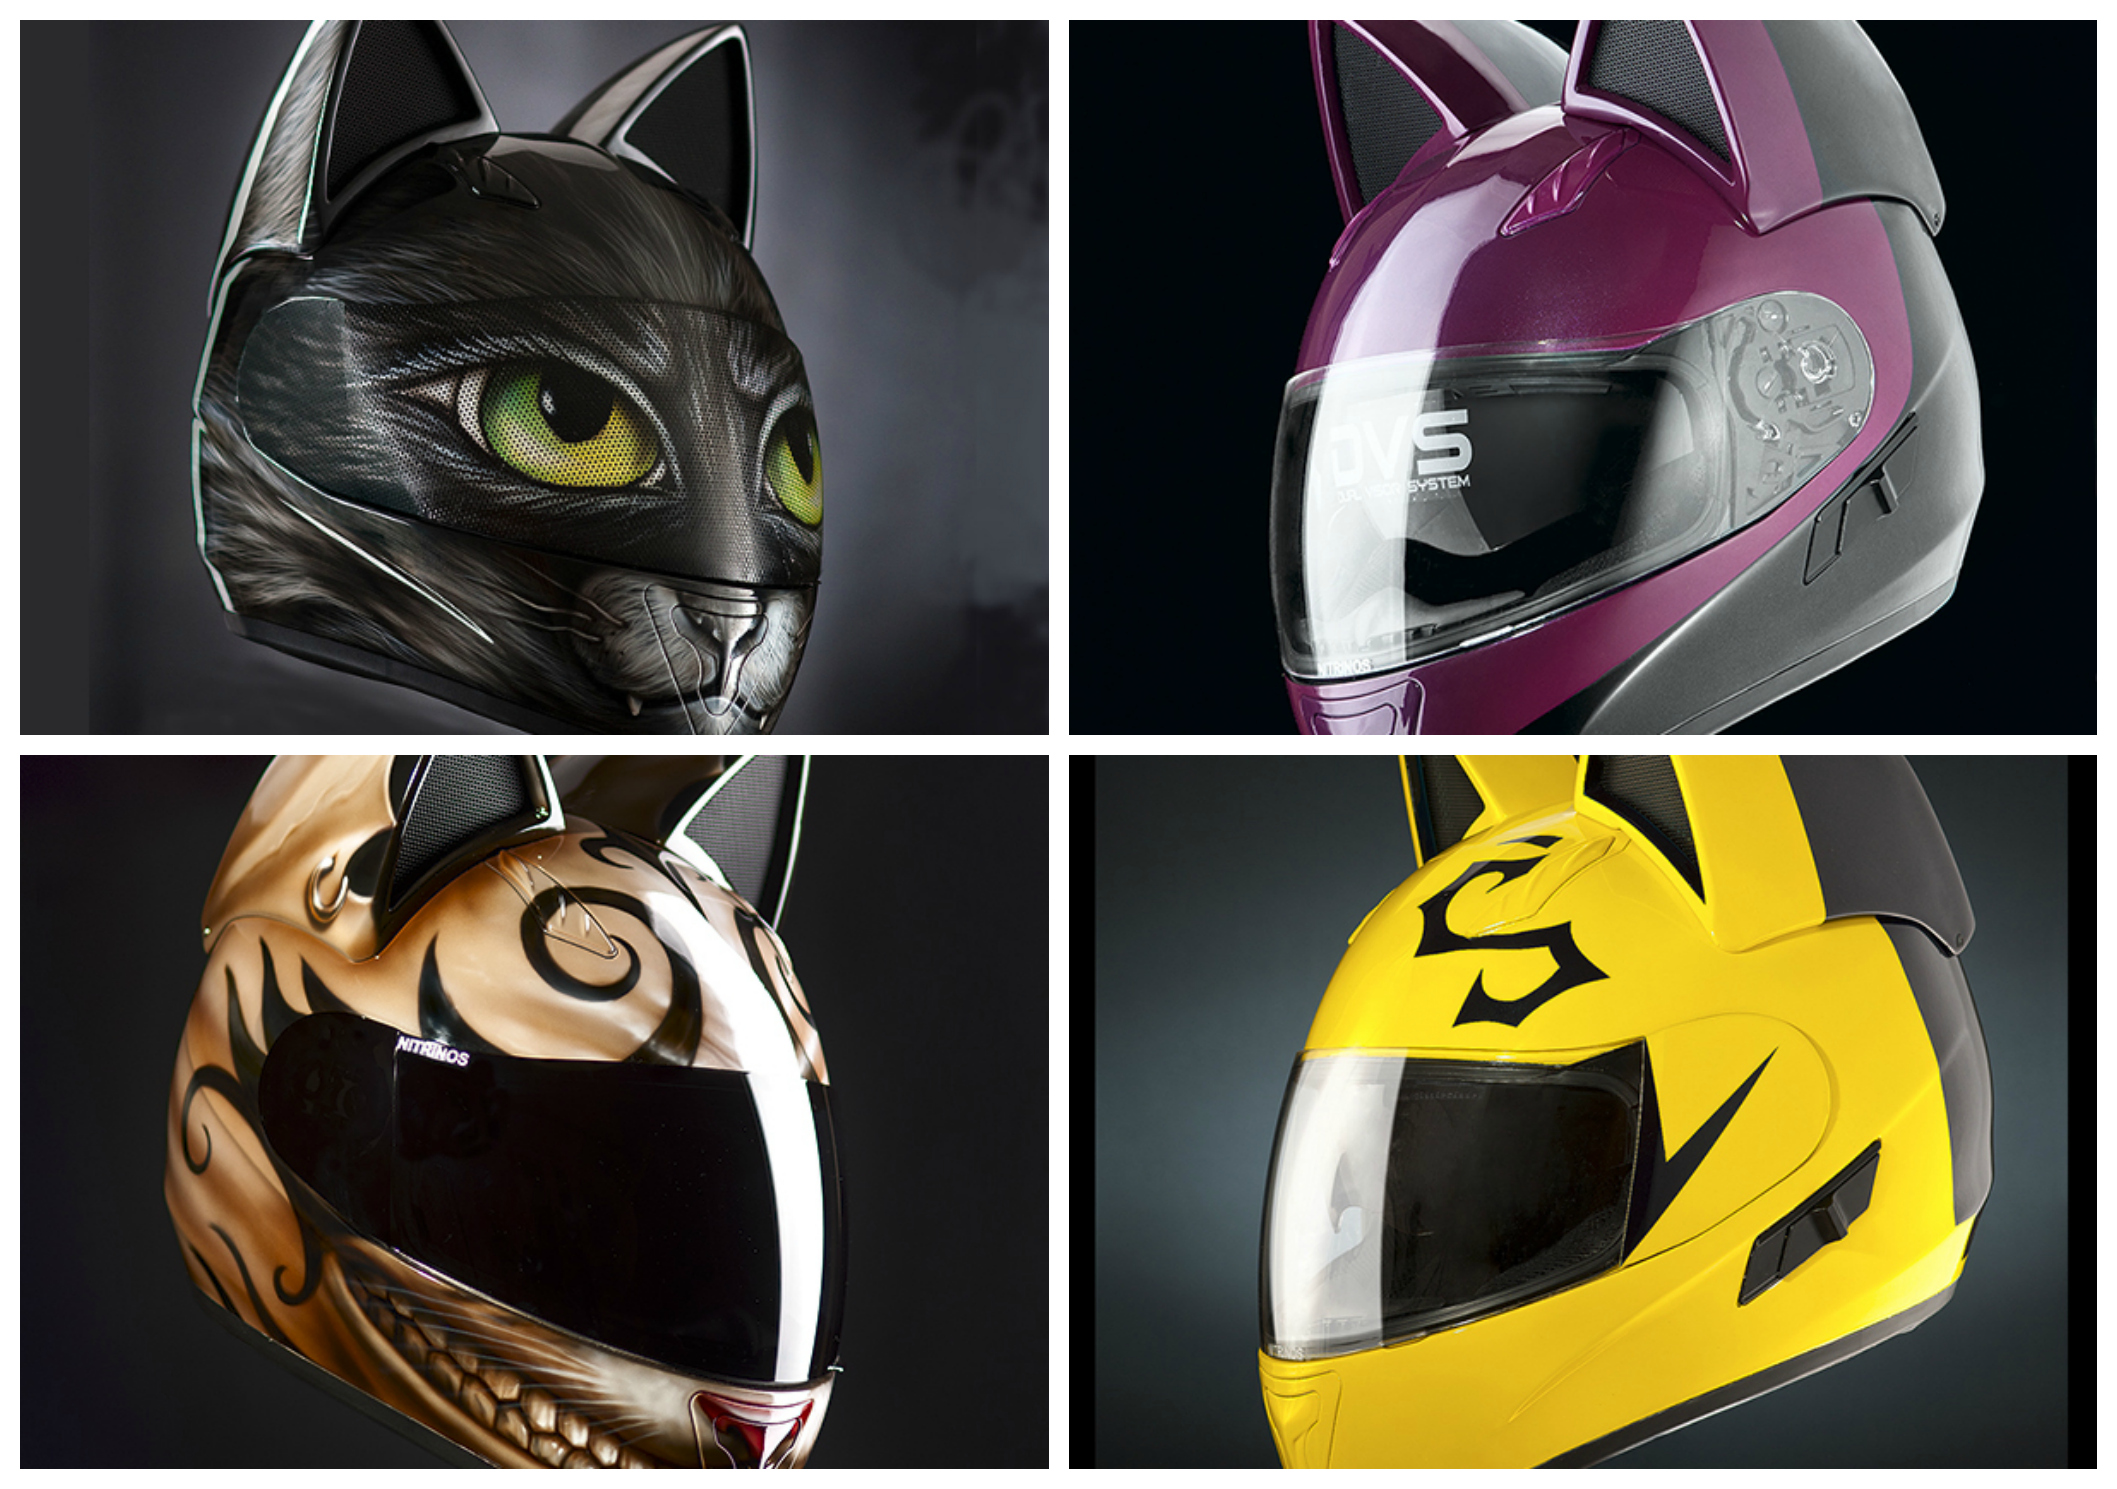 Neko Motorcycle Helmets Featuring Cute Cat Designs Are Purr Fect For Cosplay And For The Road Soranews24 Japan News Good helmet design is a hallmark of a good sentai and changeman nails it. neko motorcycle helmets featuring cute